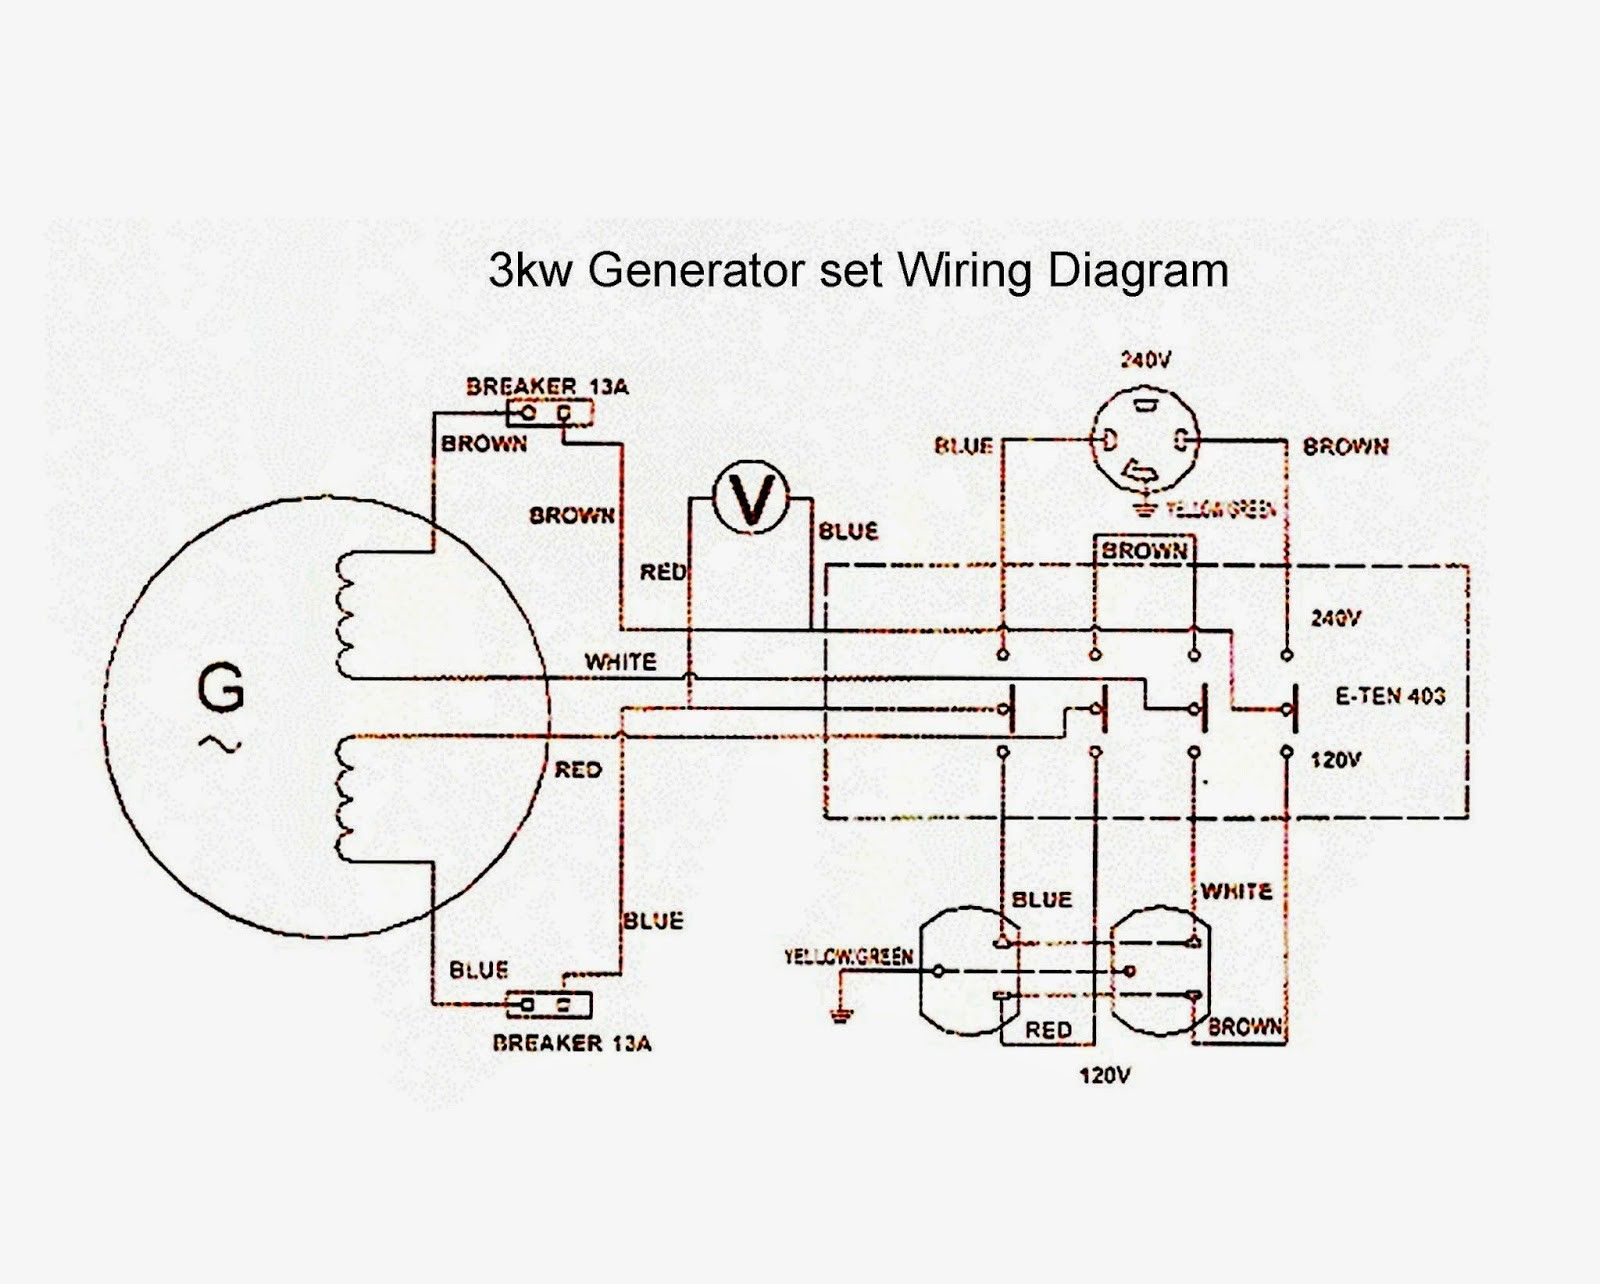 Standby Generator Wiring Diagram single phase manual transfer switch wiring  diagram reliance generator transfer switch wiring diagram -  path.freeappsforkids.co.ukWires